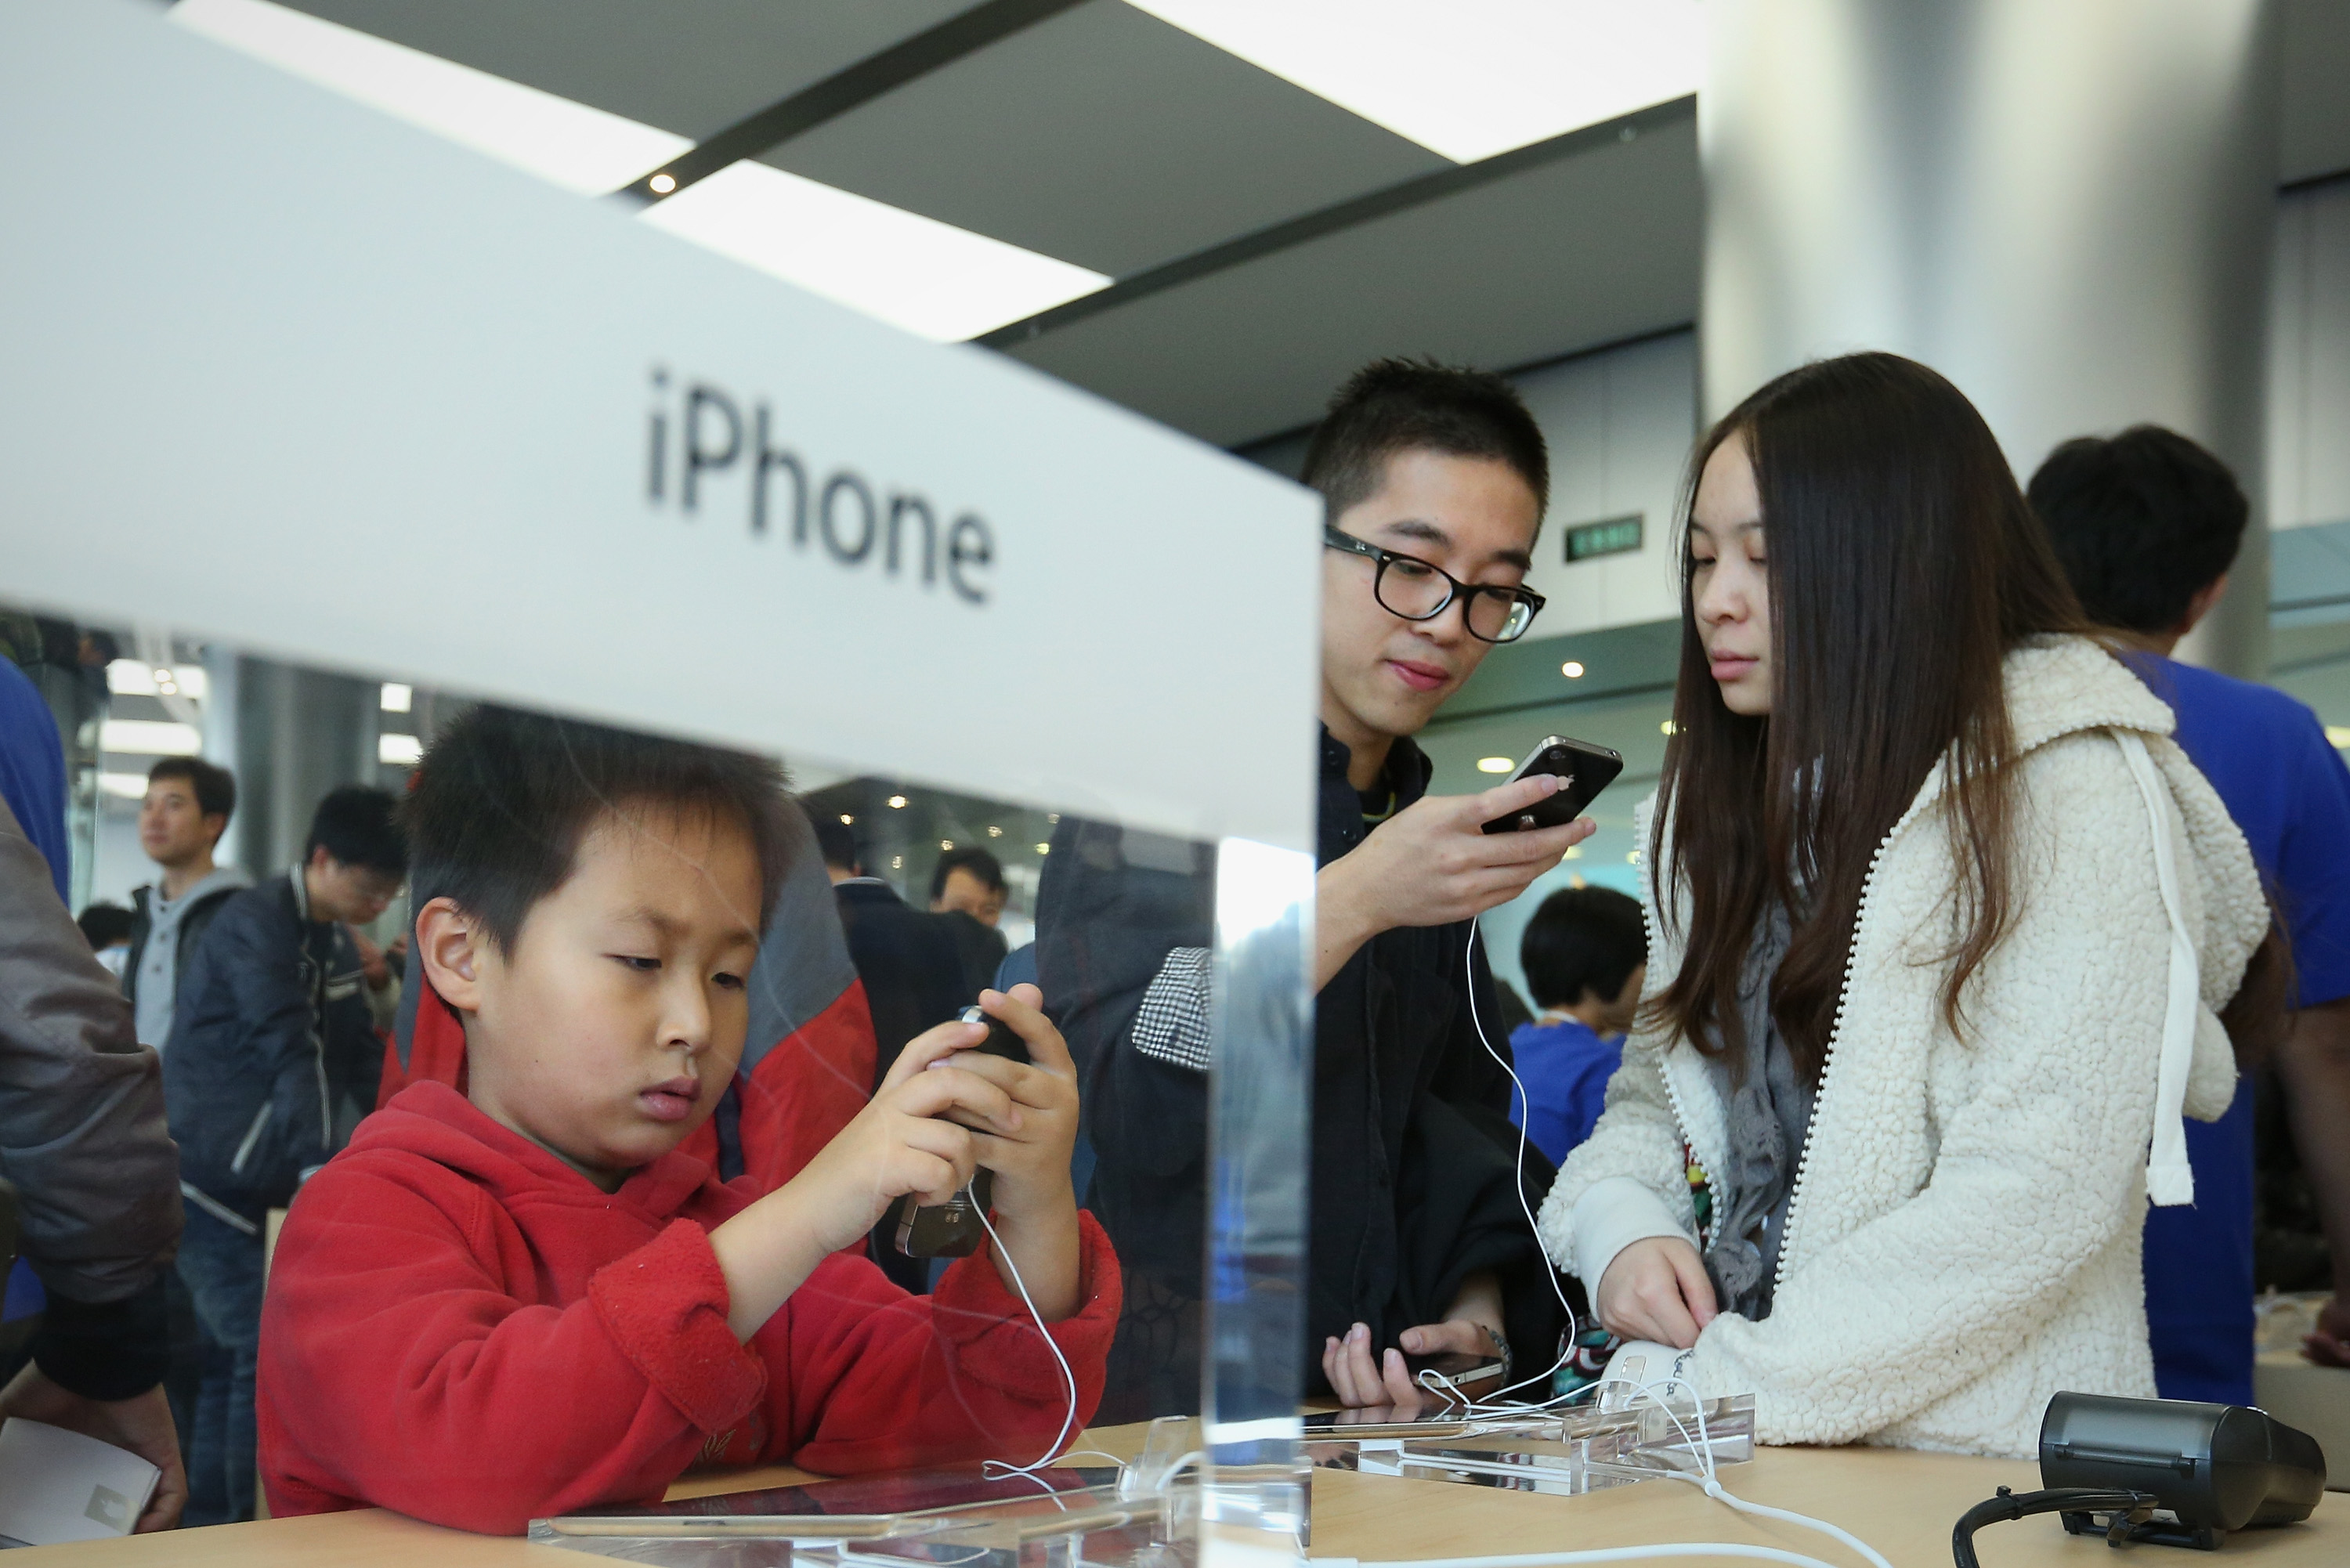 Chinese customers look at iPhone 4S in the newly opened Apple Store in Wangfujing shopping district on October 20, 2012 in Beijing.